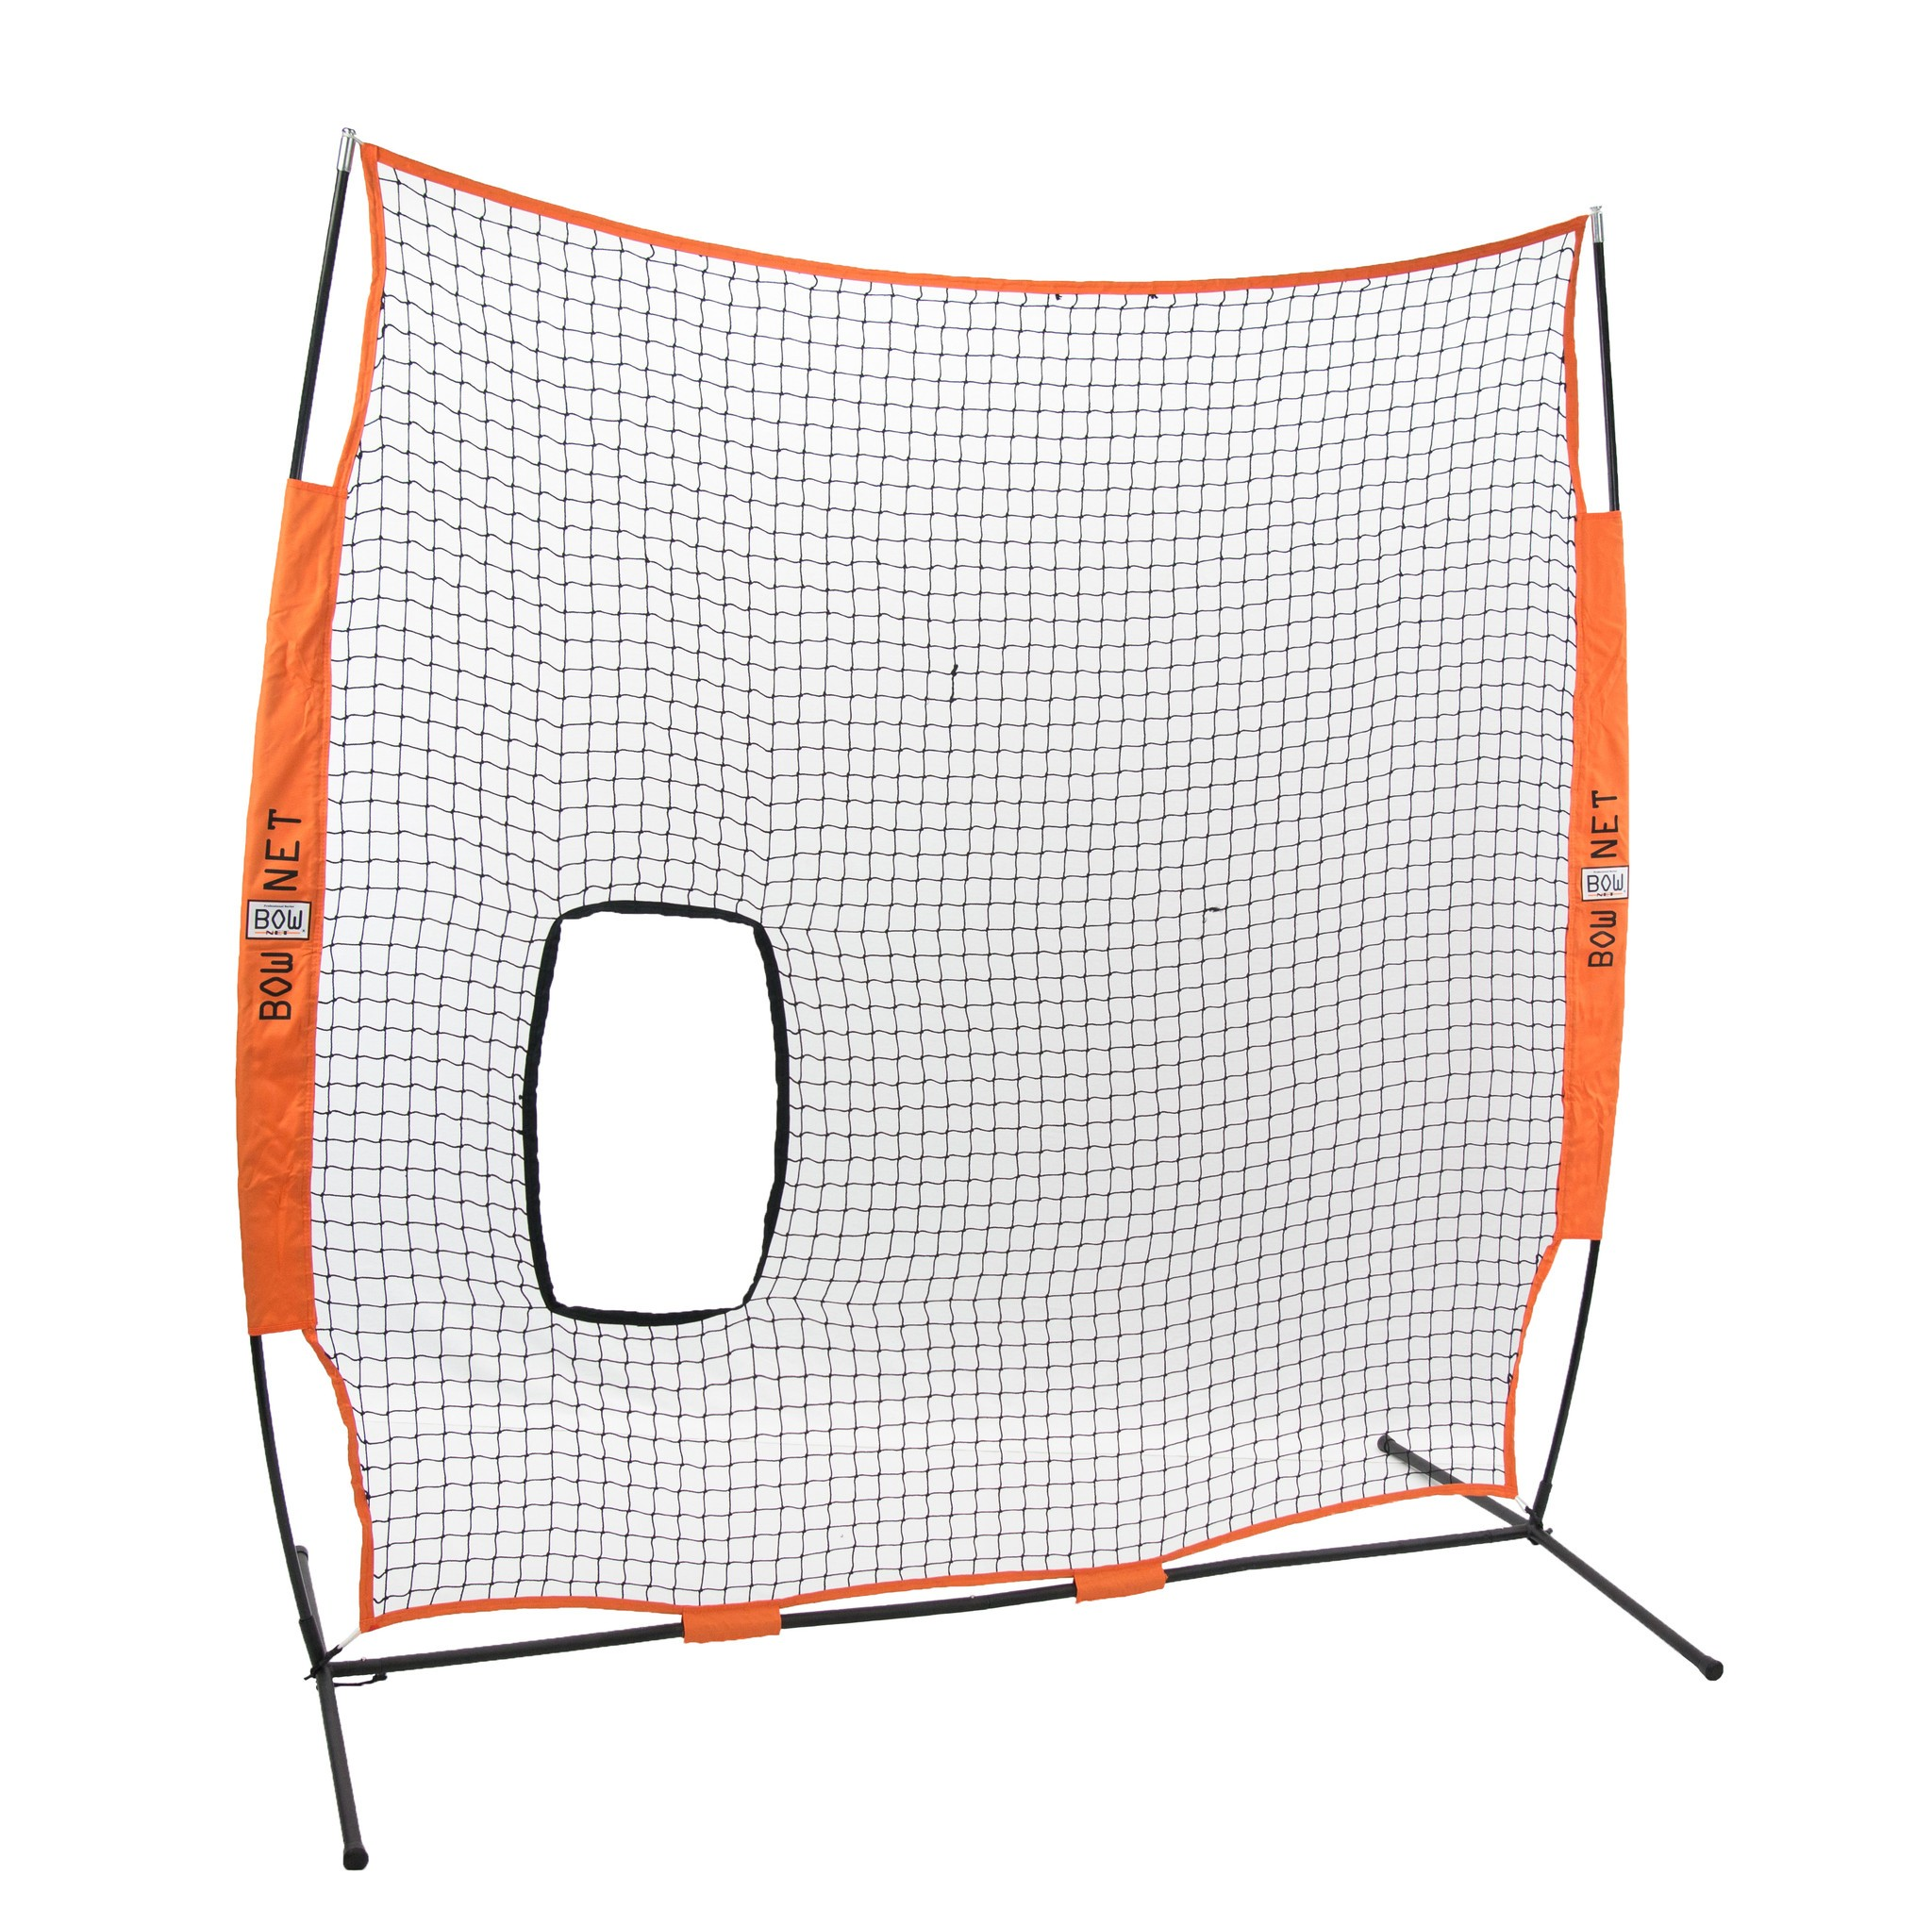 Bownet 8' x 8' Pitch Thru Pro Protection Net